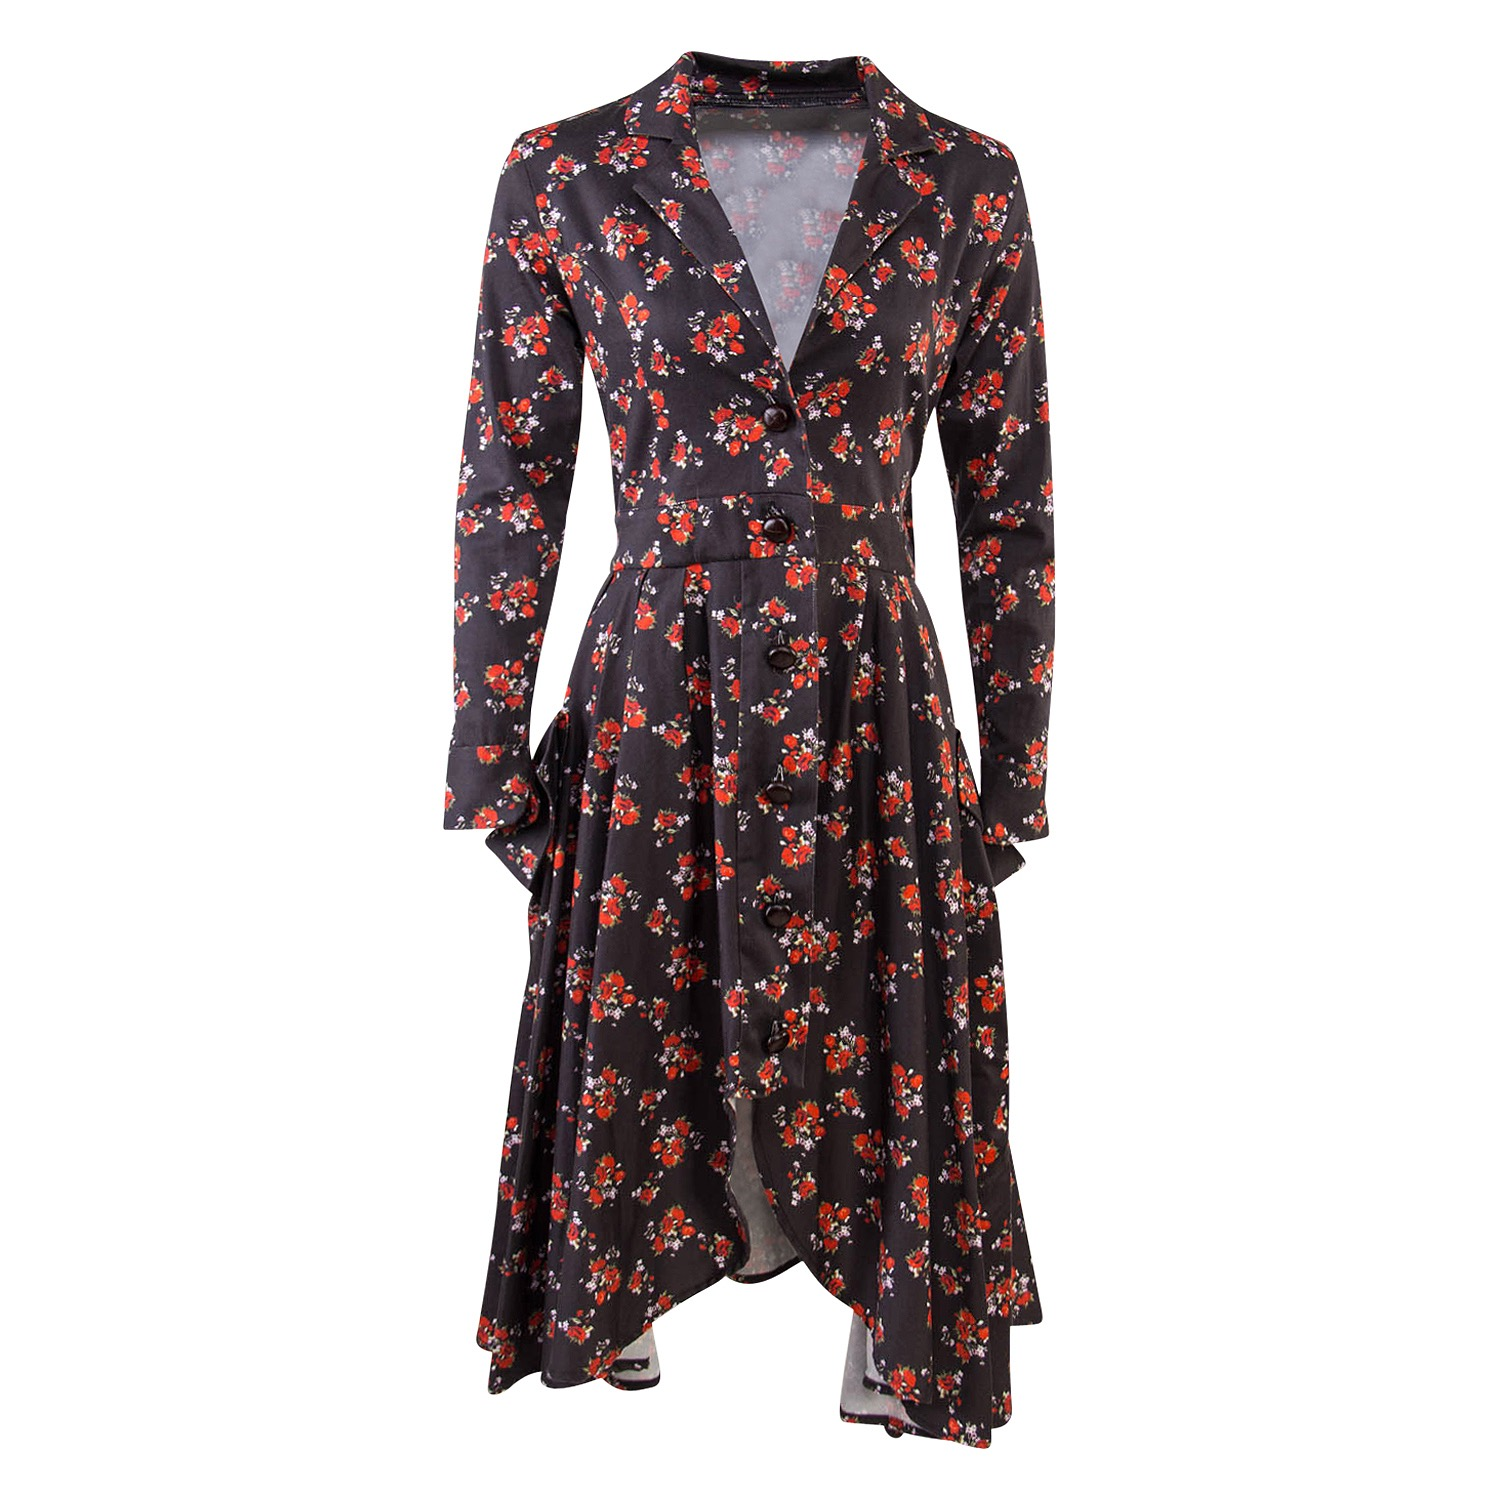 The Sicilian Floral Riding Coat